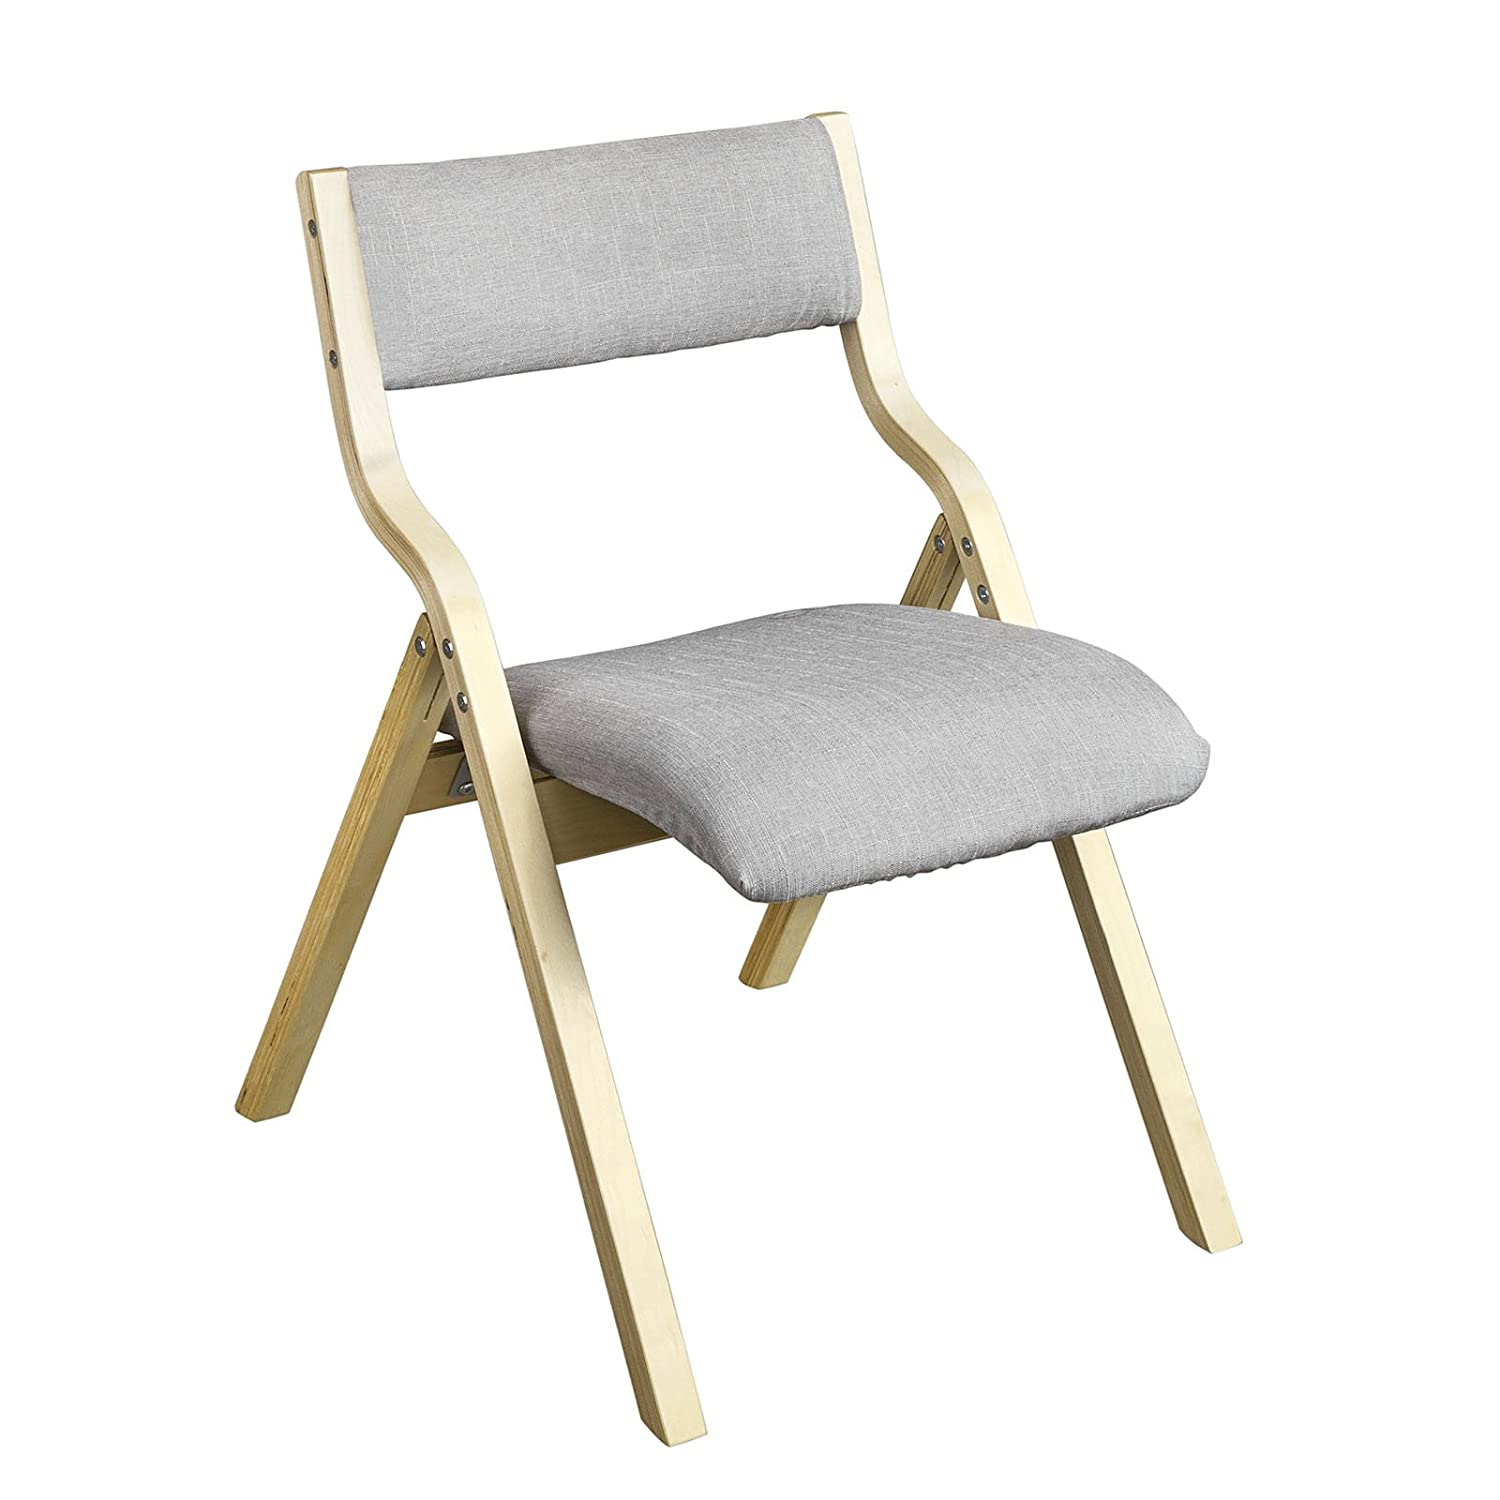 SoBuy FST40 HG Wooden Padded Folding Chair Dining Chair fice